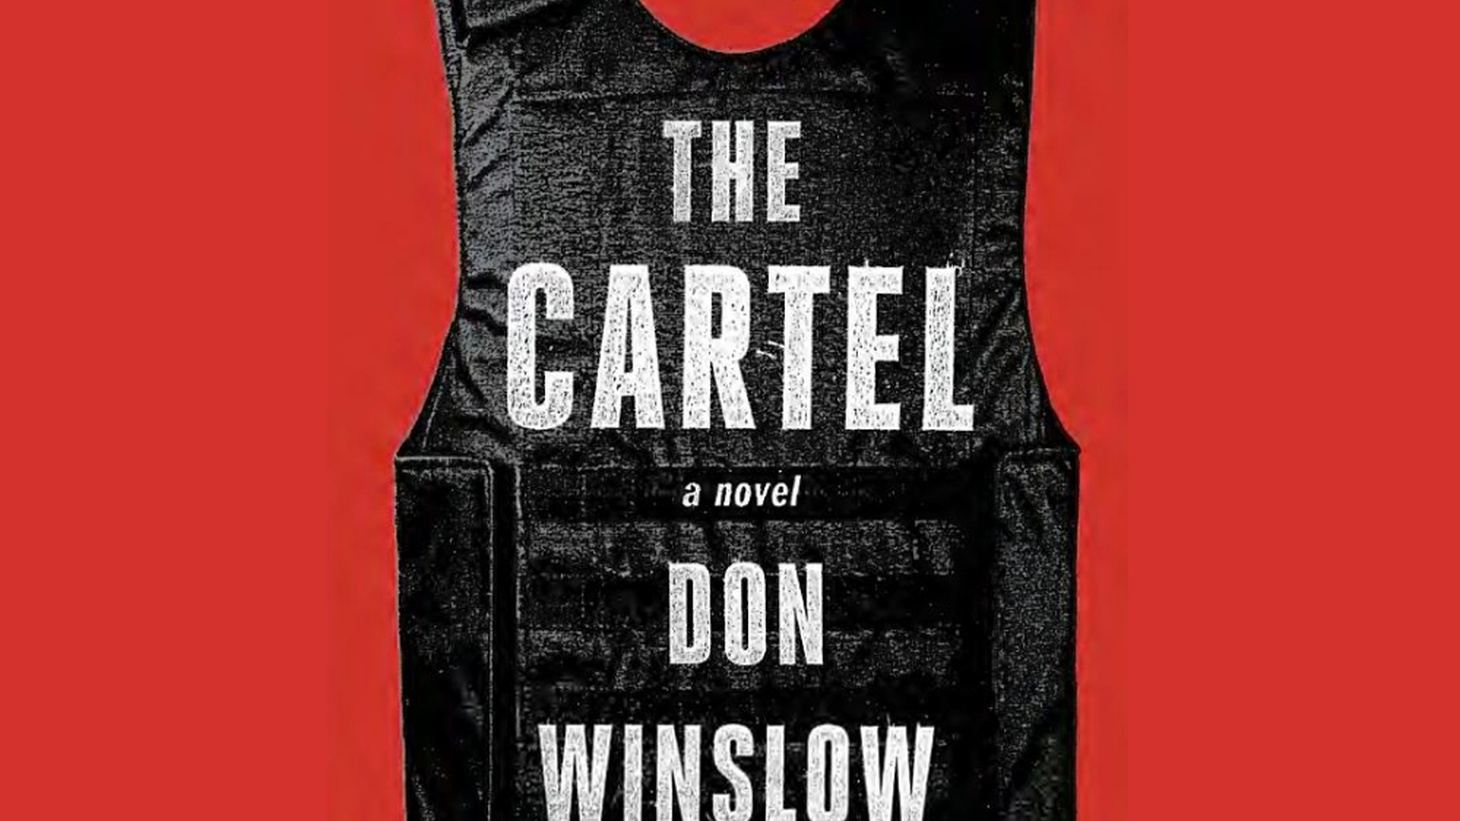 The head of one of the world's deadliest drug cartels sits in a Mexican prison. The government trumpets his capture as a major blow to the drug trade in the country. And then one day, the king of the narcos simply walks out of prison, and back into the drug trade.